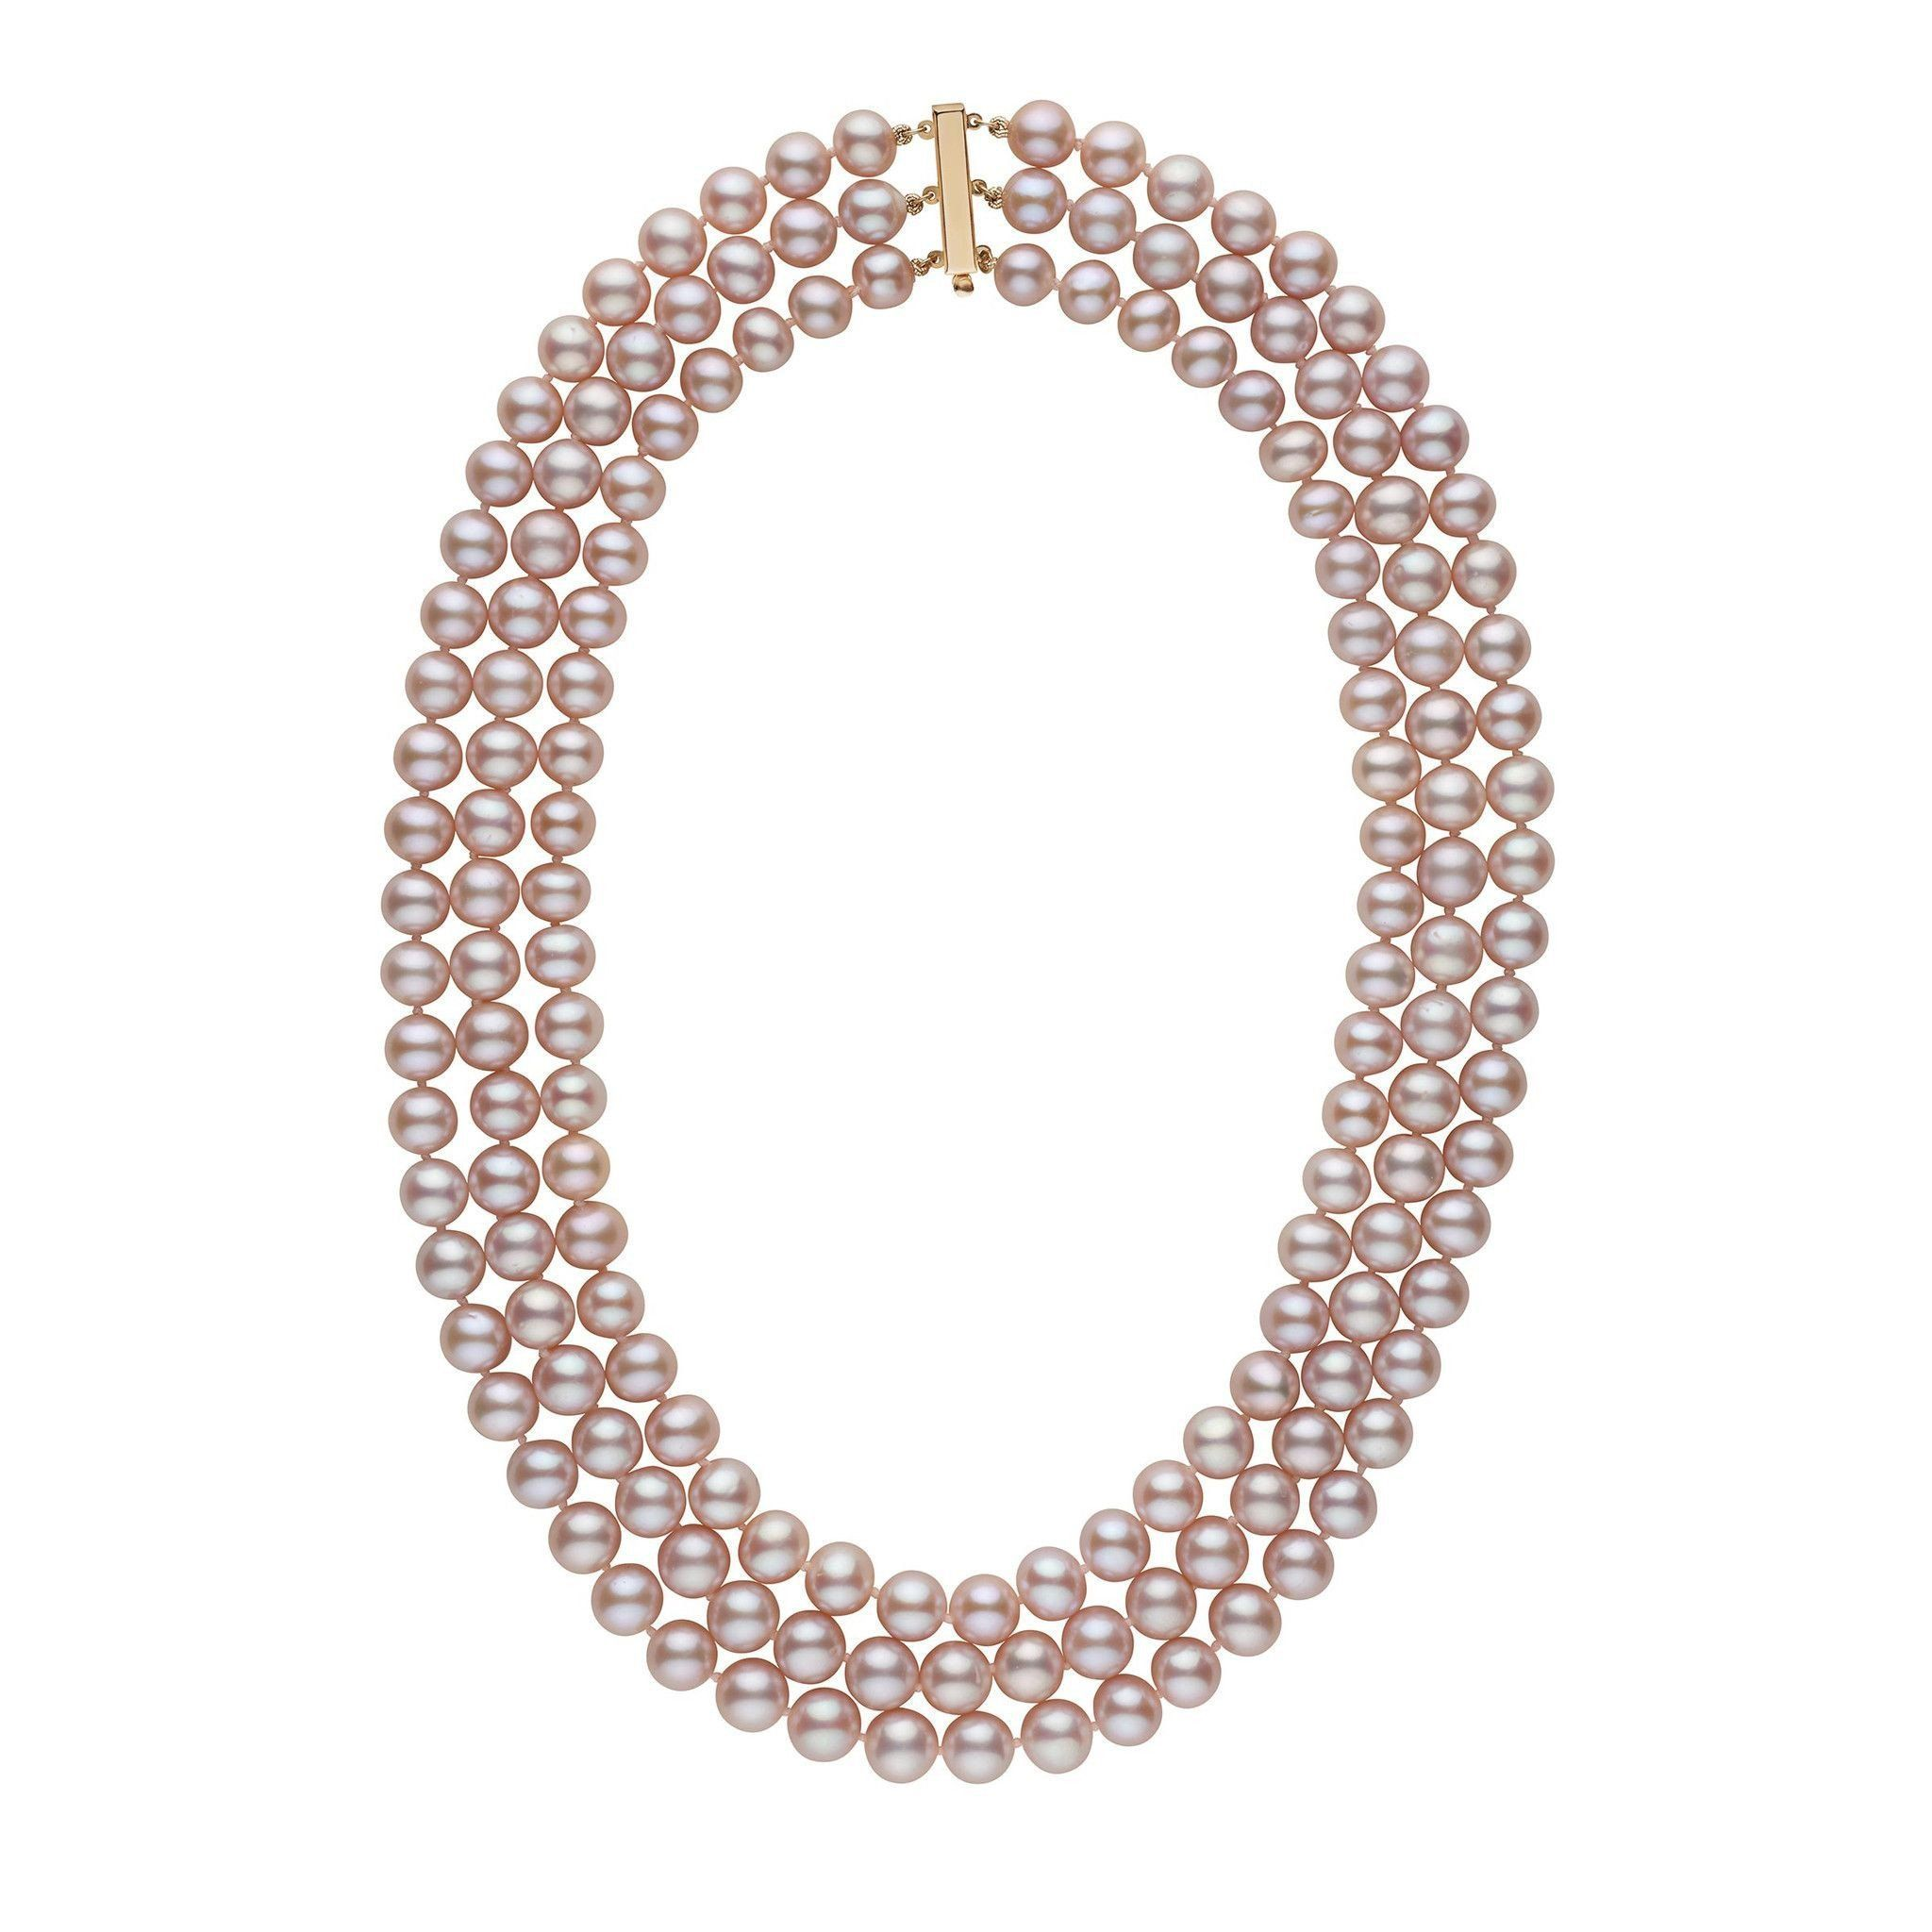 6.5-7.0 mm Triple-Strand AA+ Lavender Freshwater Pearl Necklace